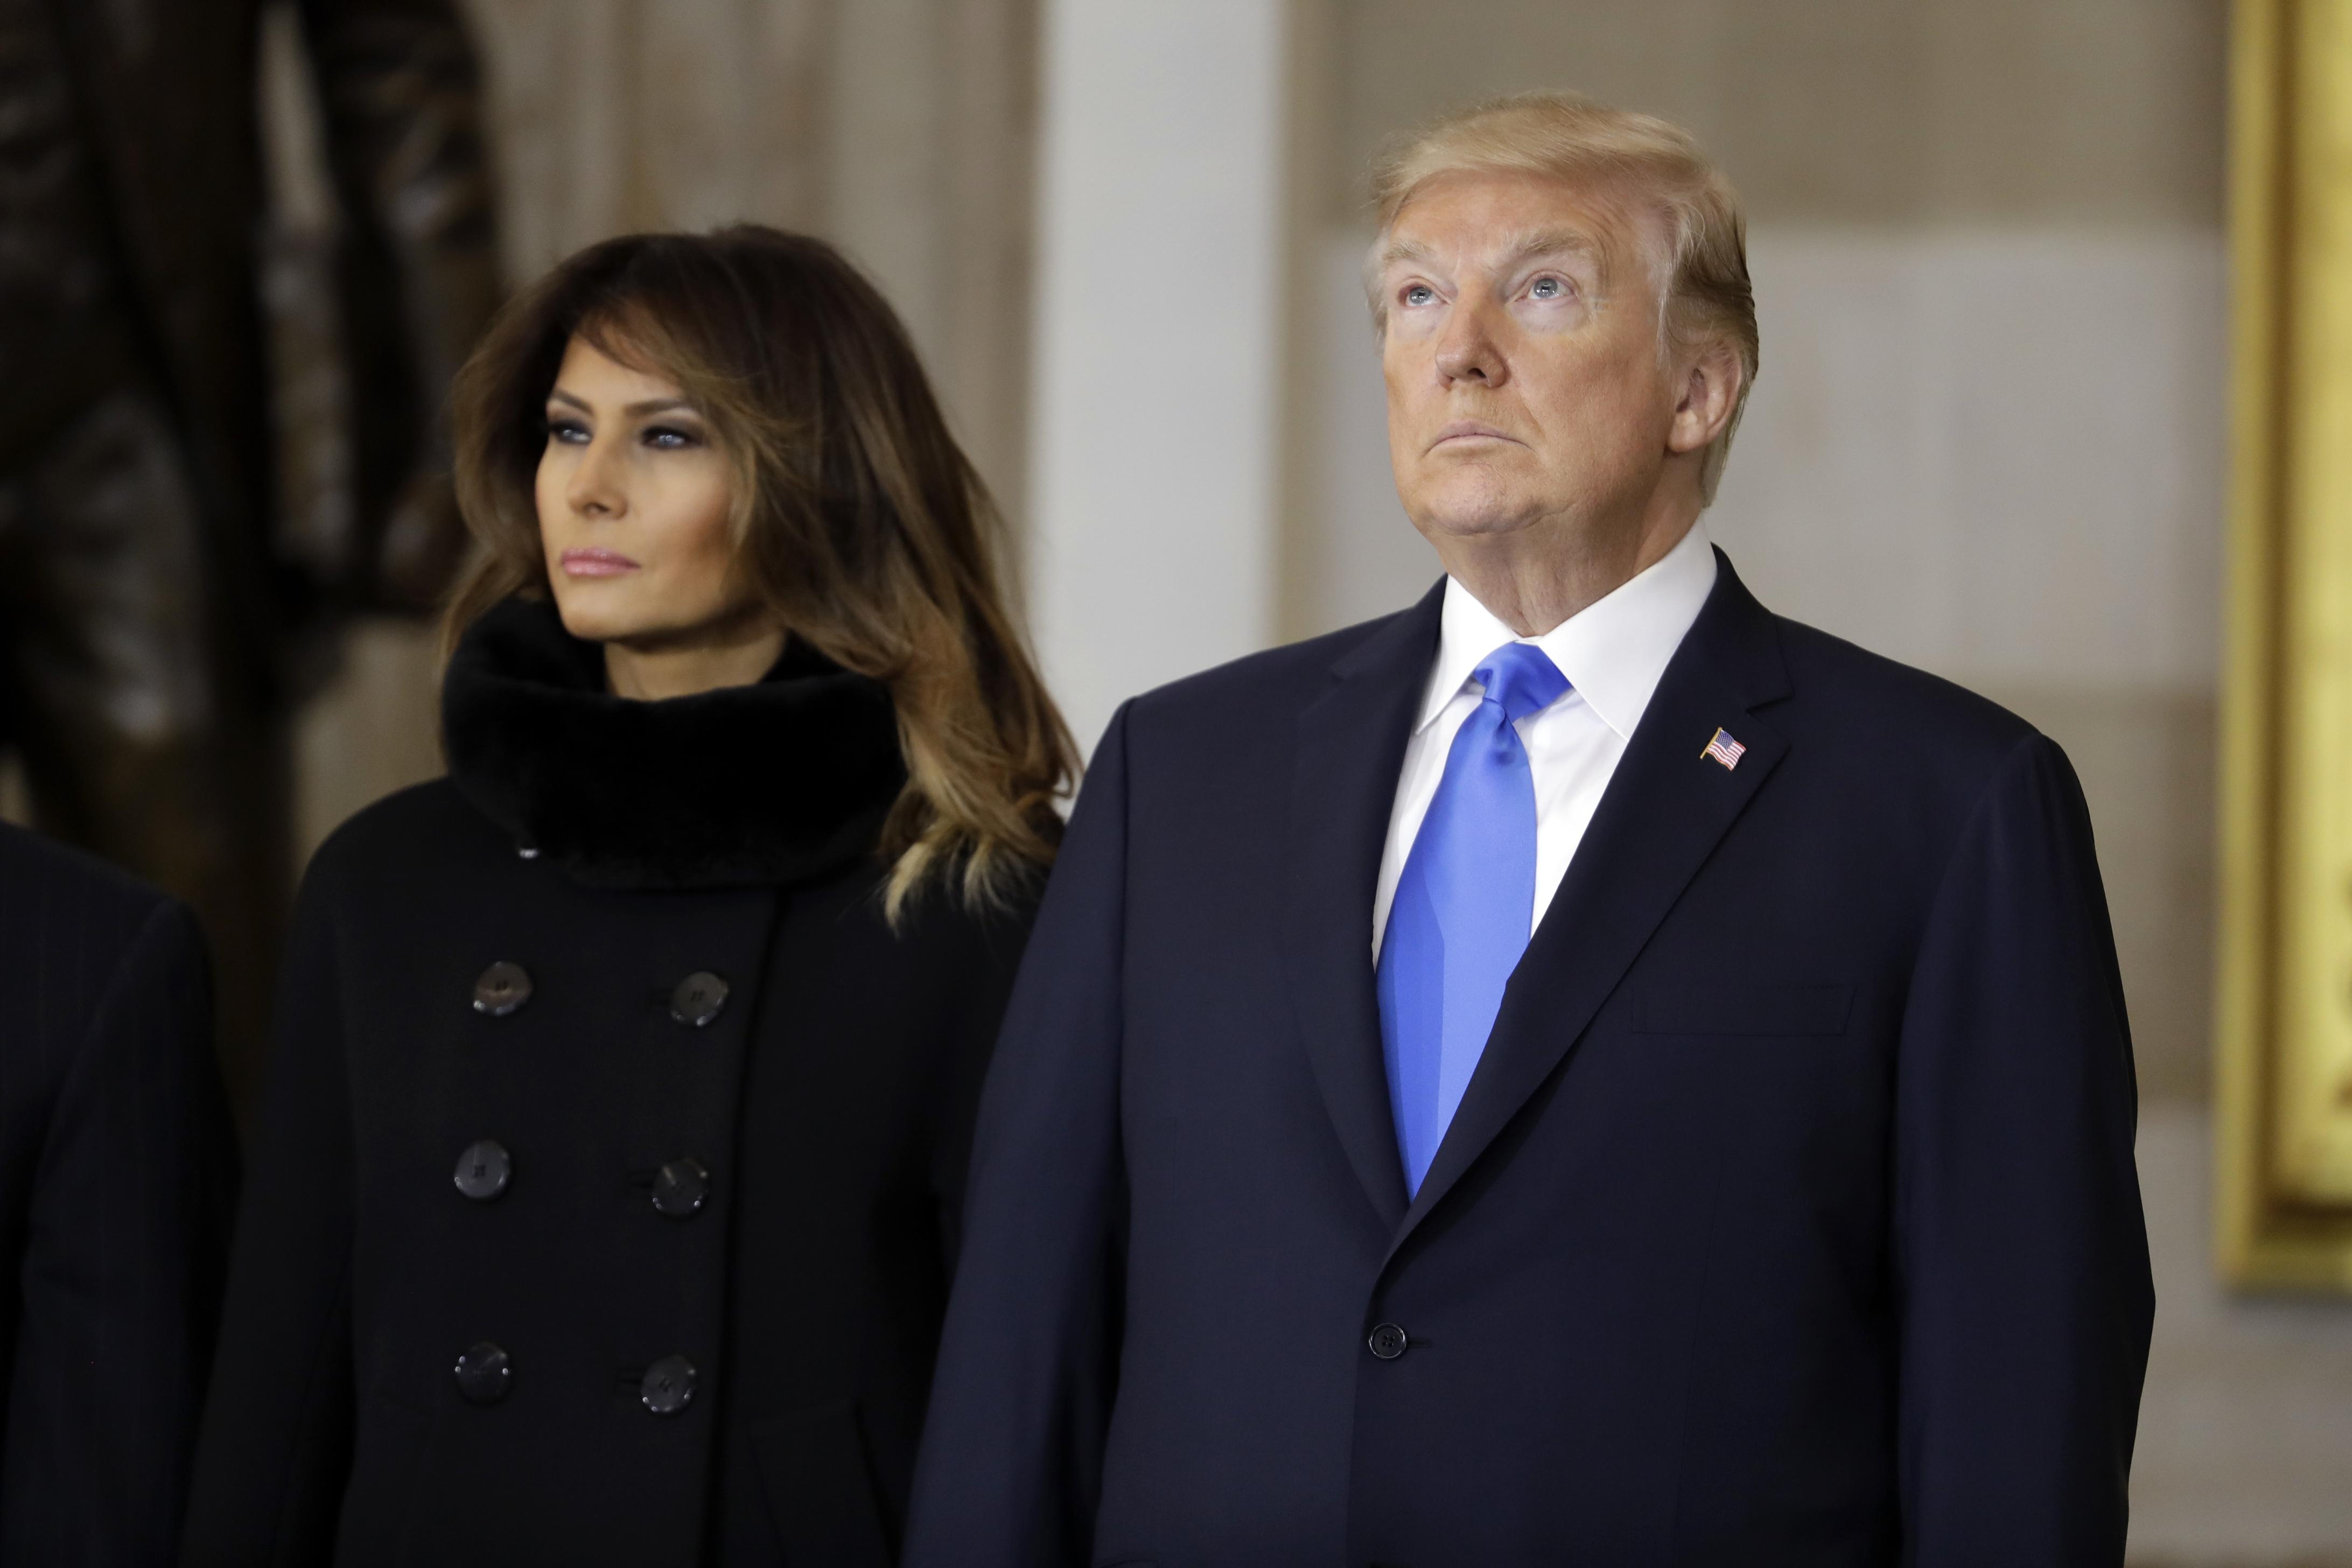 Donal Trump e Melania sono separati in casa, secondo il Washington Post